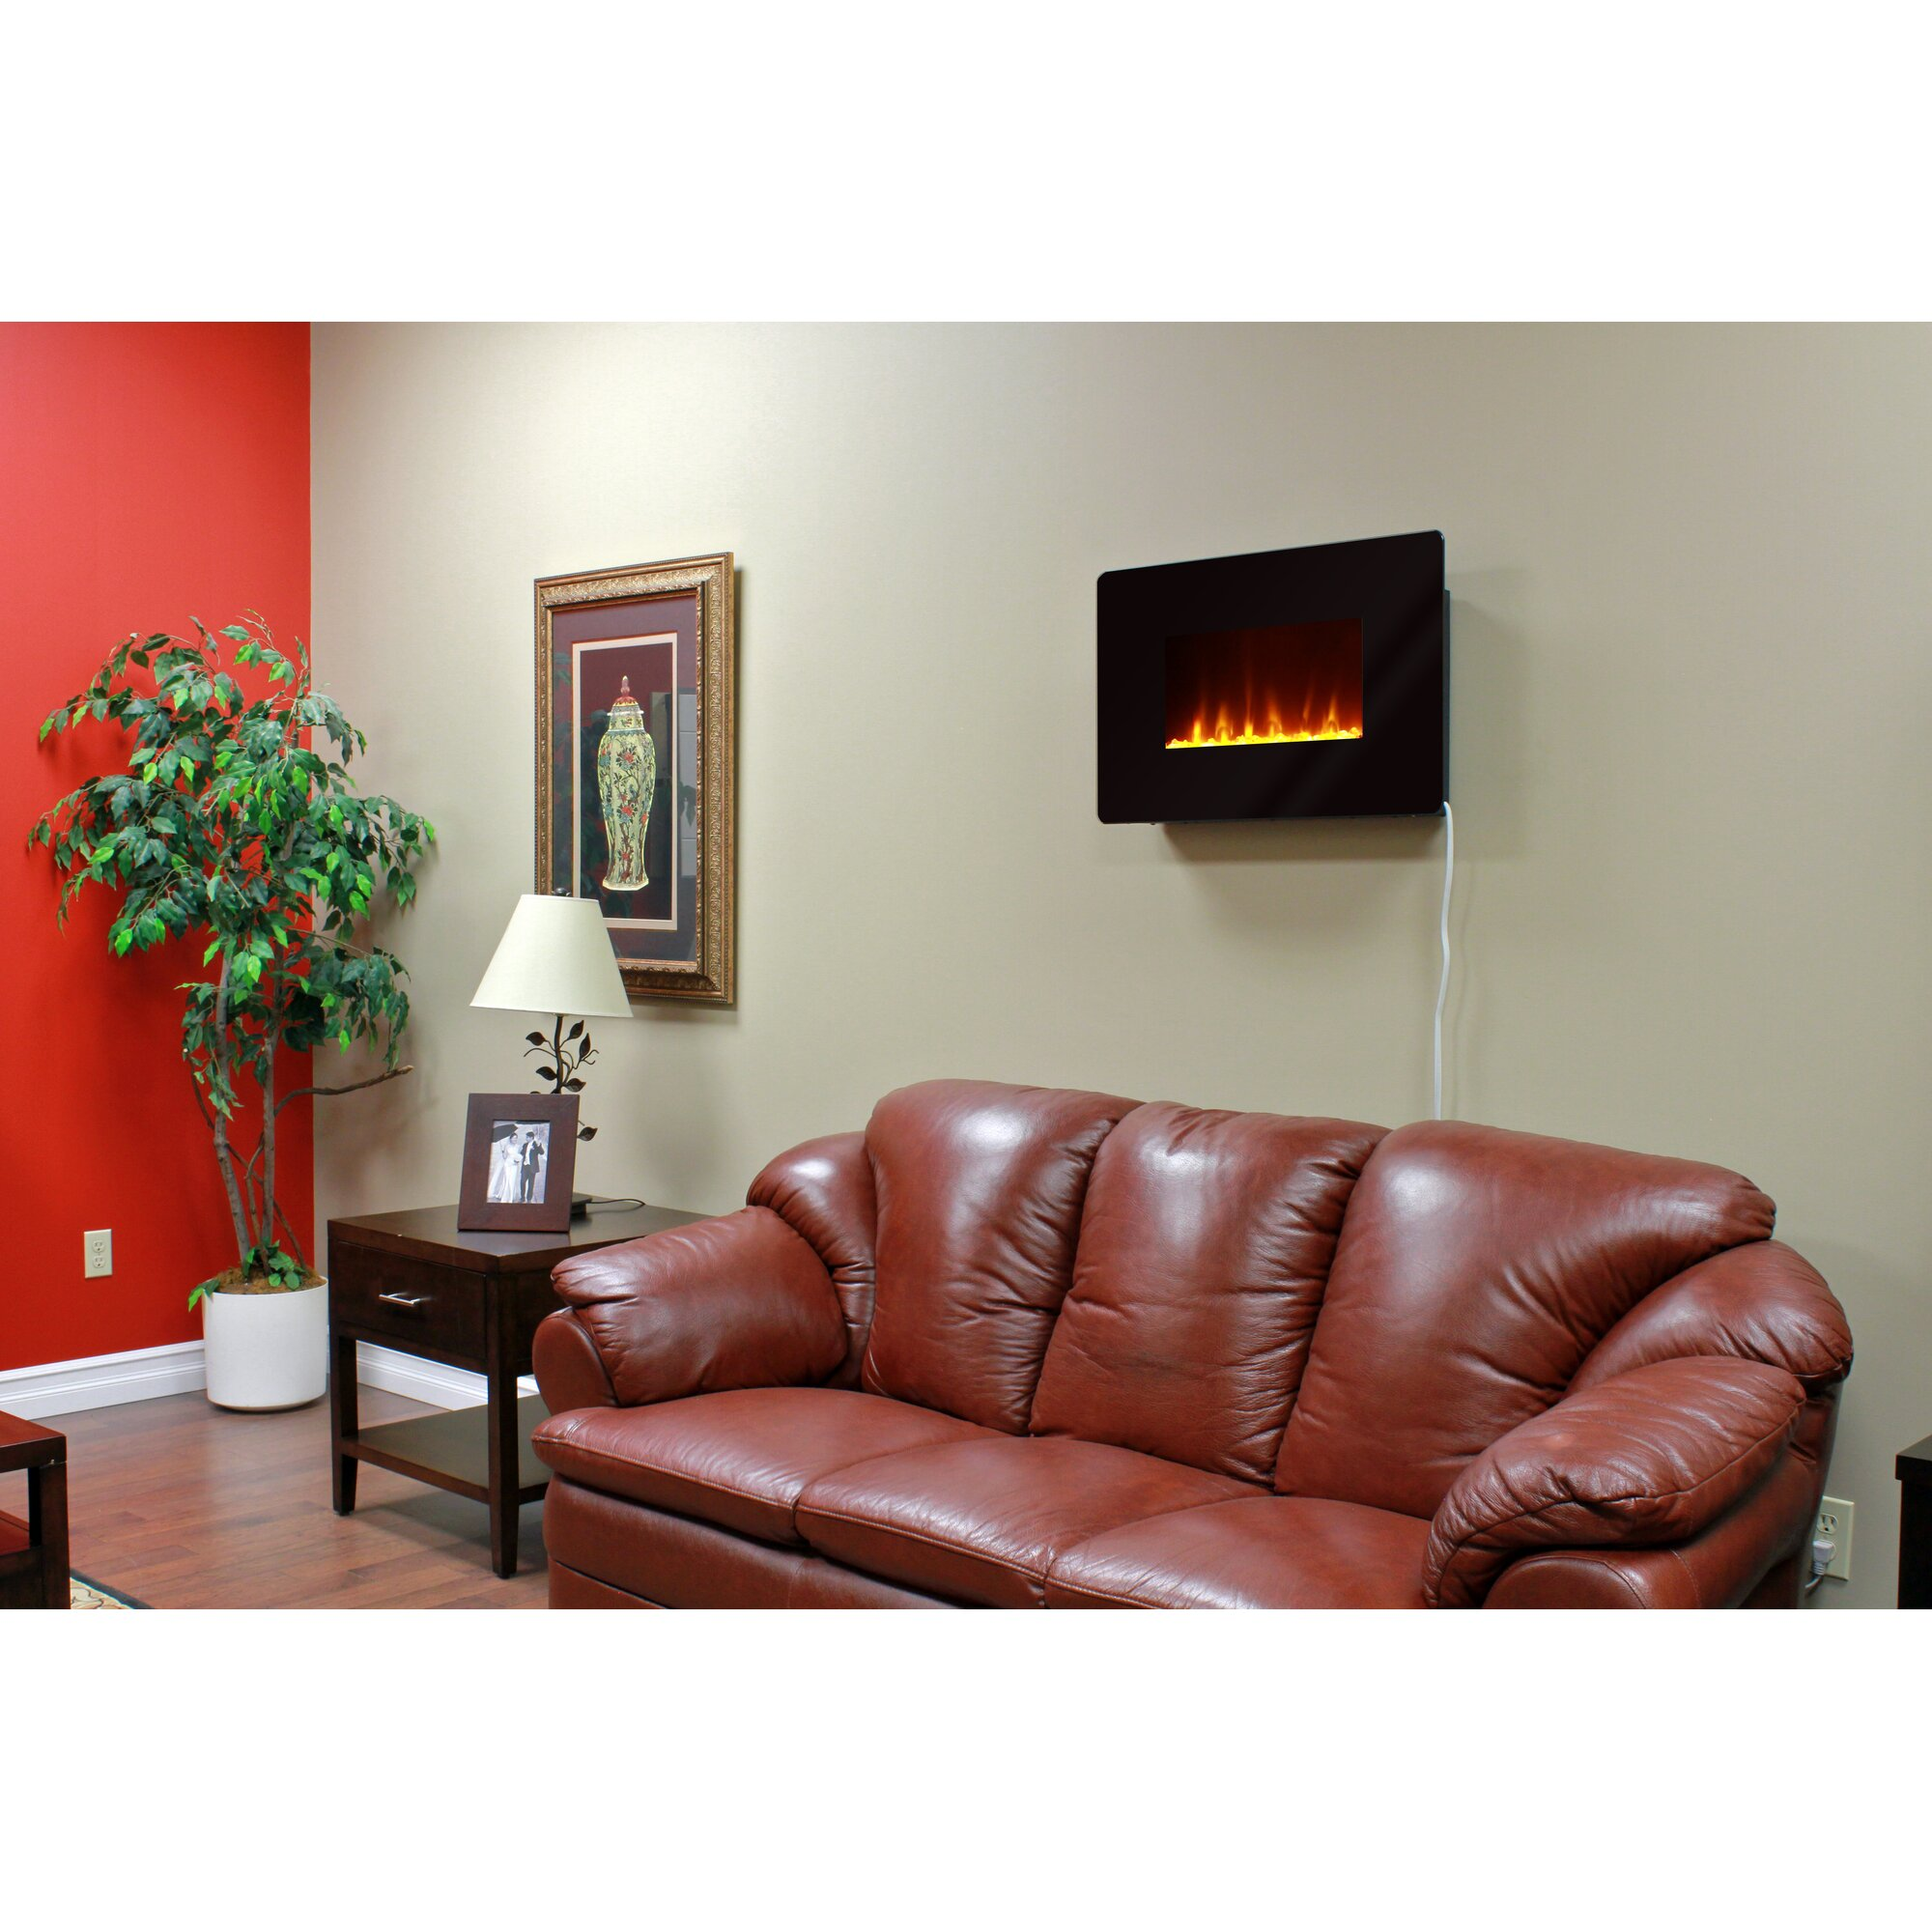 electric fireplace model sf103-23 owners manual pdf